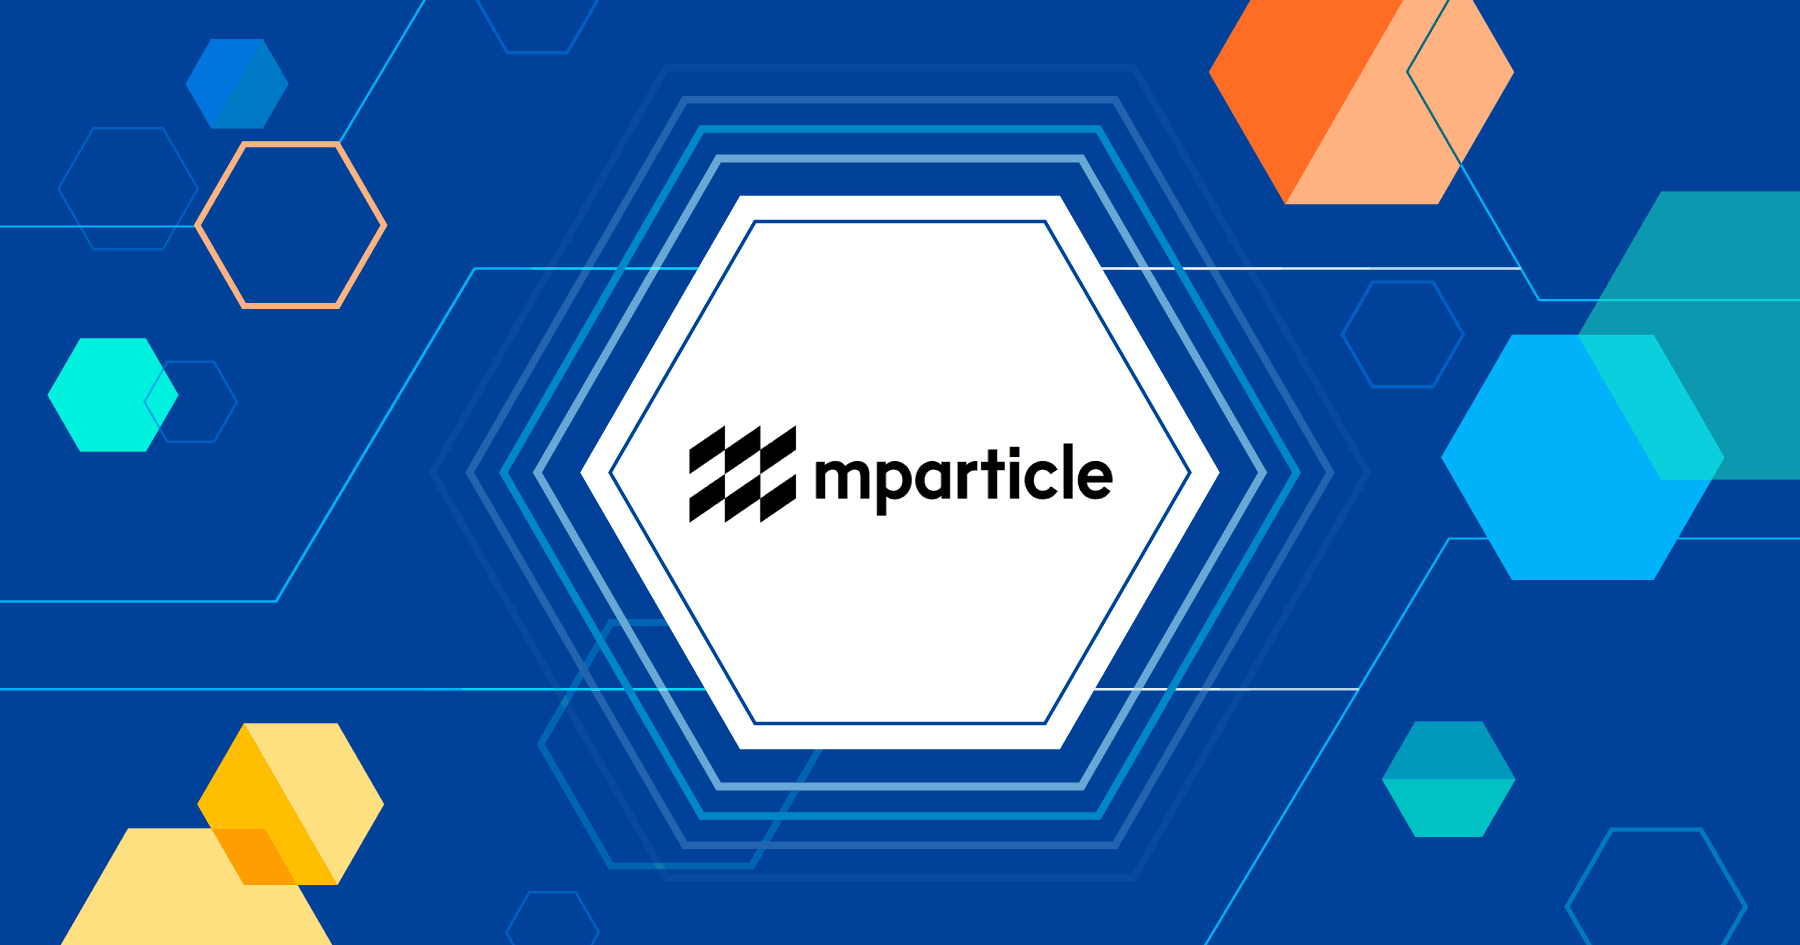 blog-mparticle-945-updated